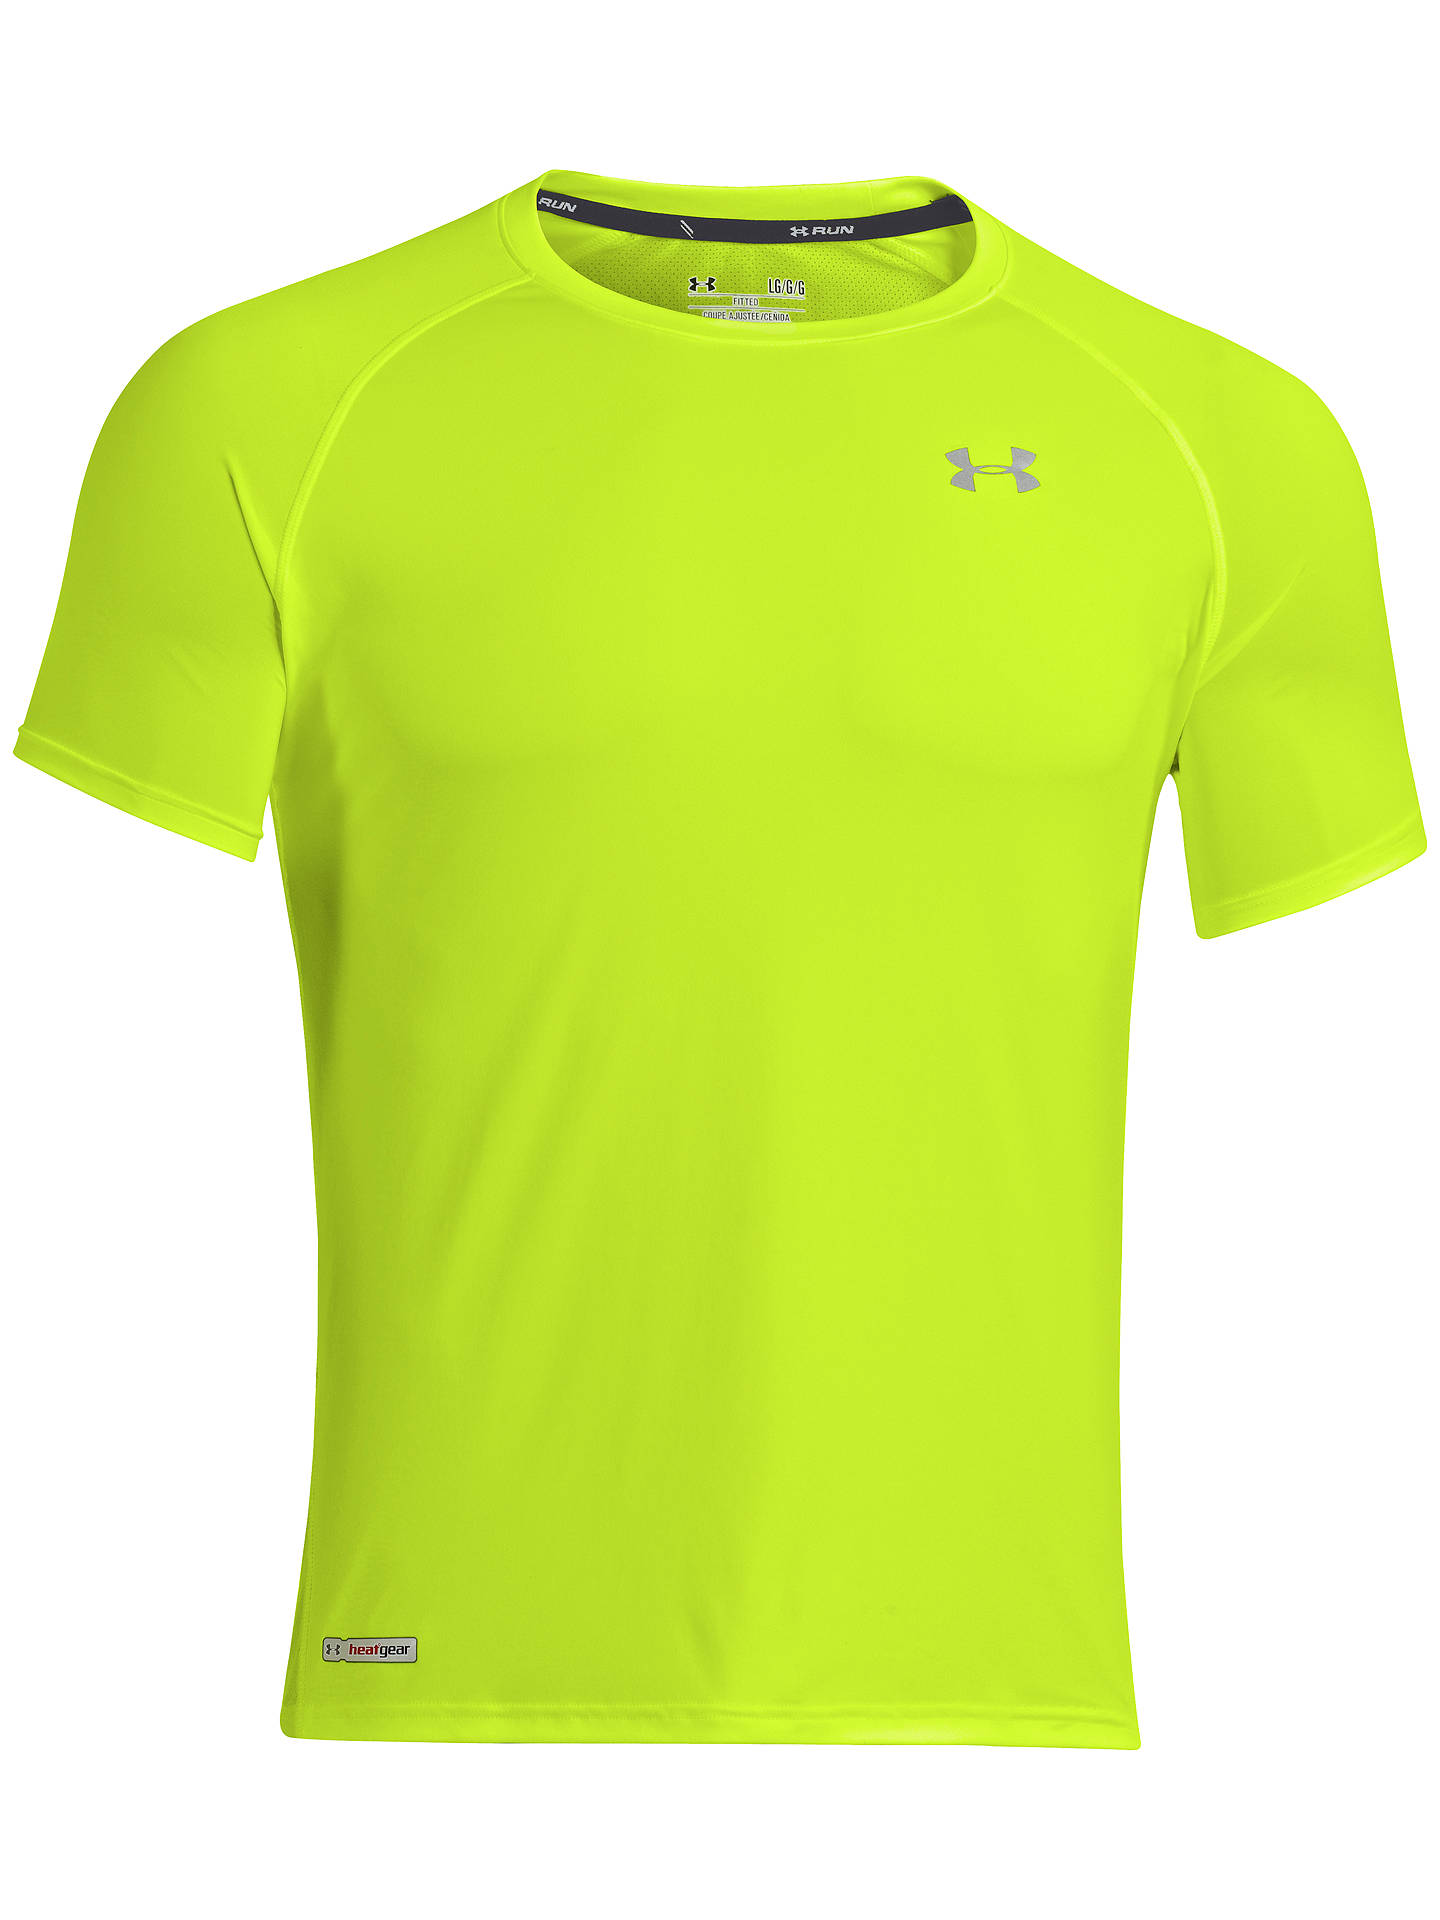 4830f2b90d Under Armour Heatgear Flyweight Running T-Shirt at John Lewis & Partners